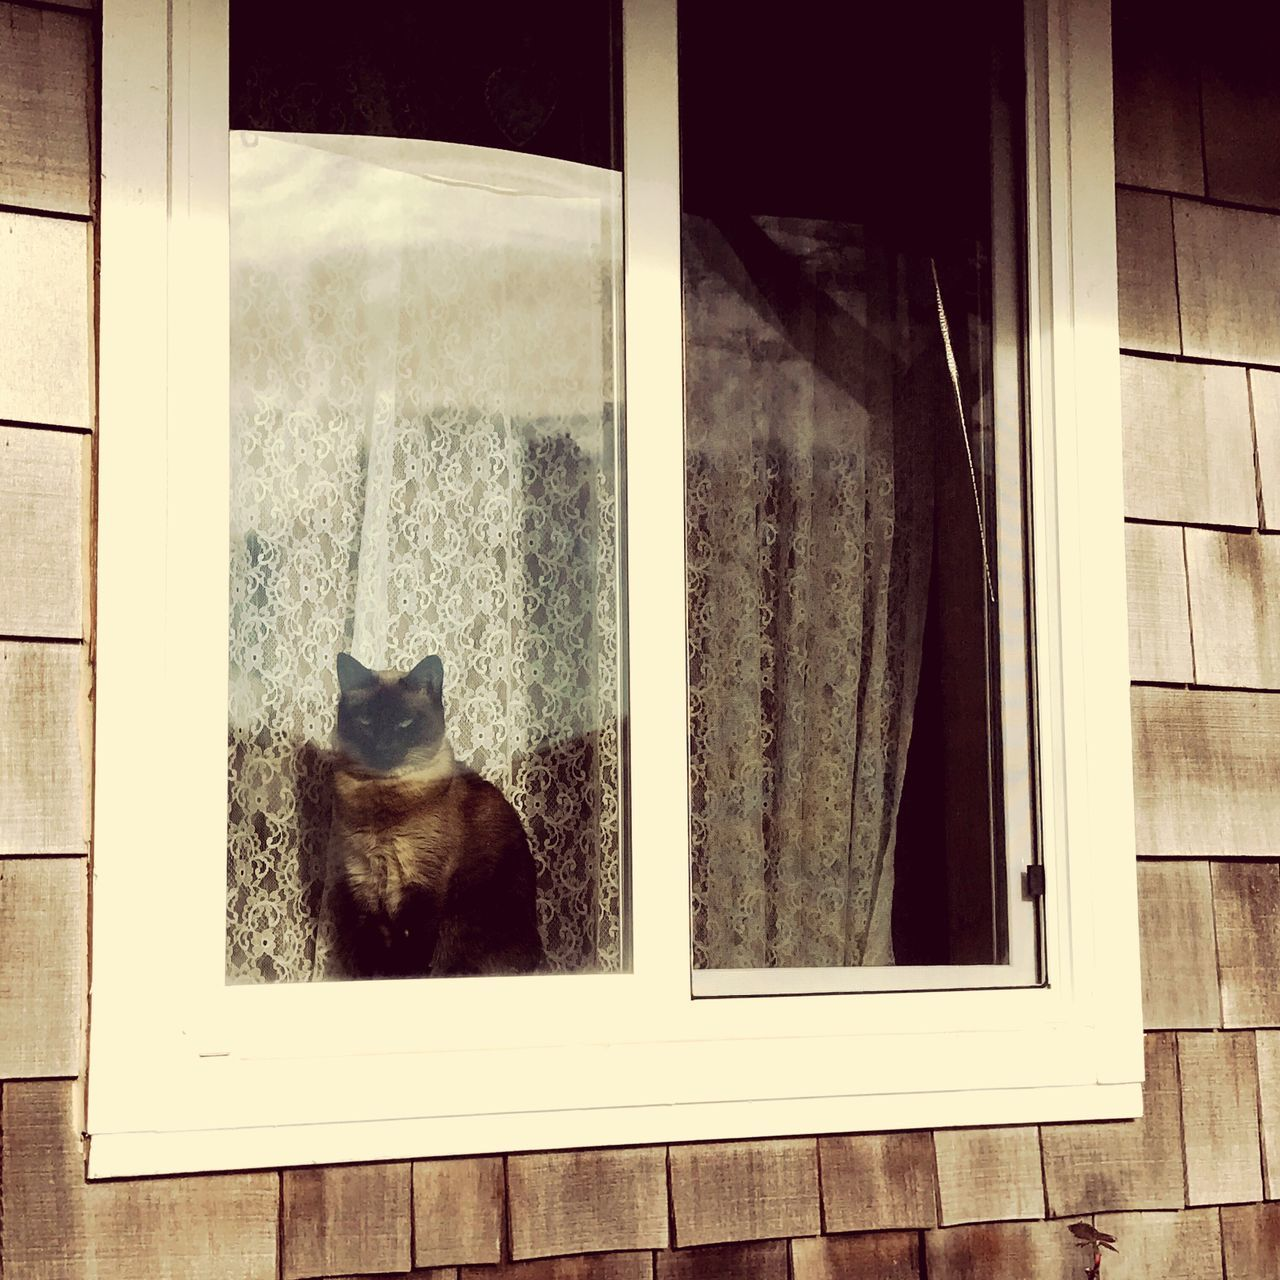 Cat in the window at Cliff House Bed And Breakfast in Waldport Oregon Domestic Cat Window Pets Domestic Animals One Animal Animal Themes Looking Through Window Cat Indoors  Feline Mammal Window Sill Day No People Sliding Door Peaceful Meditative Happy Place